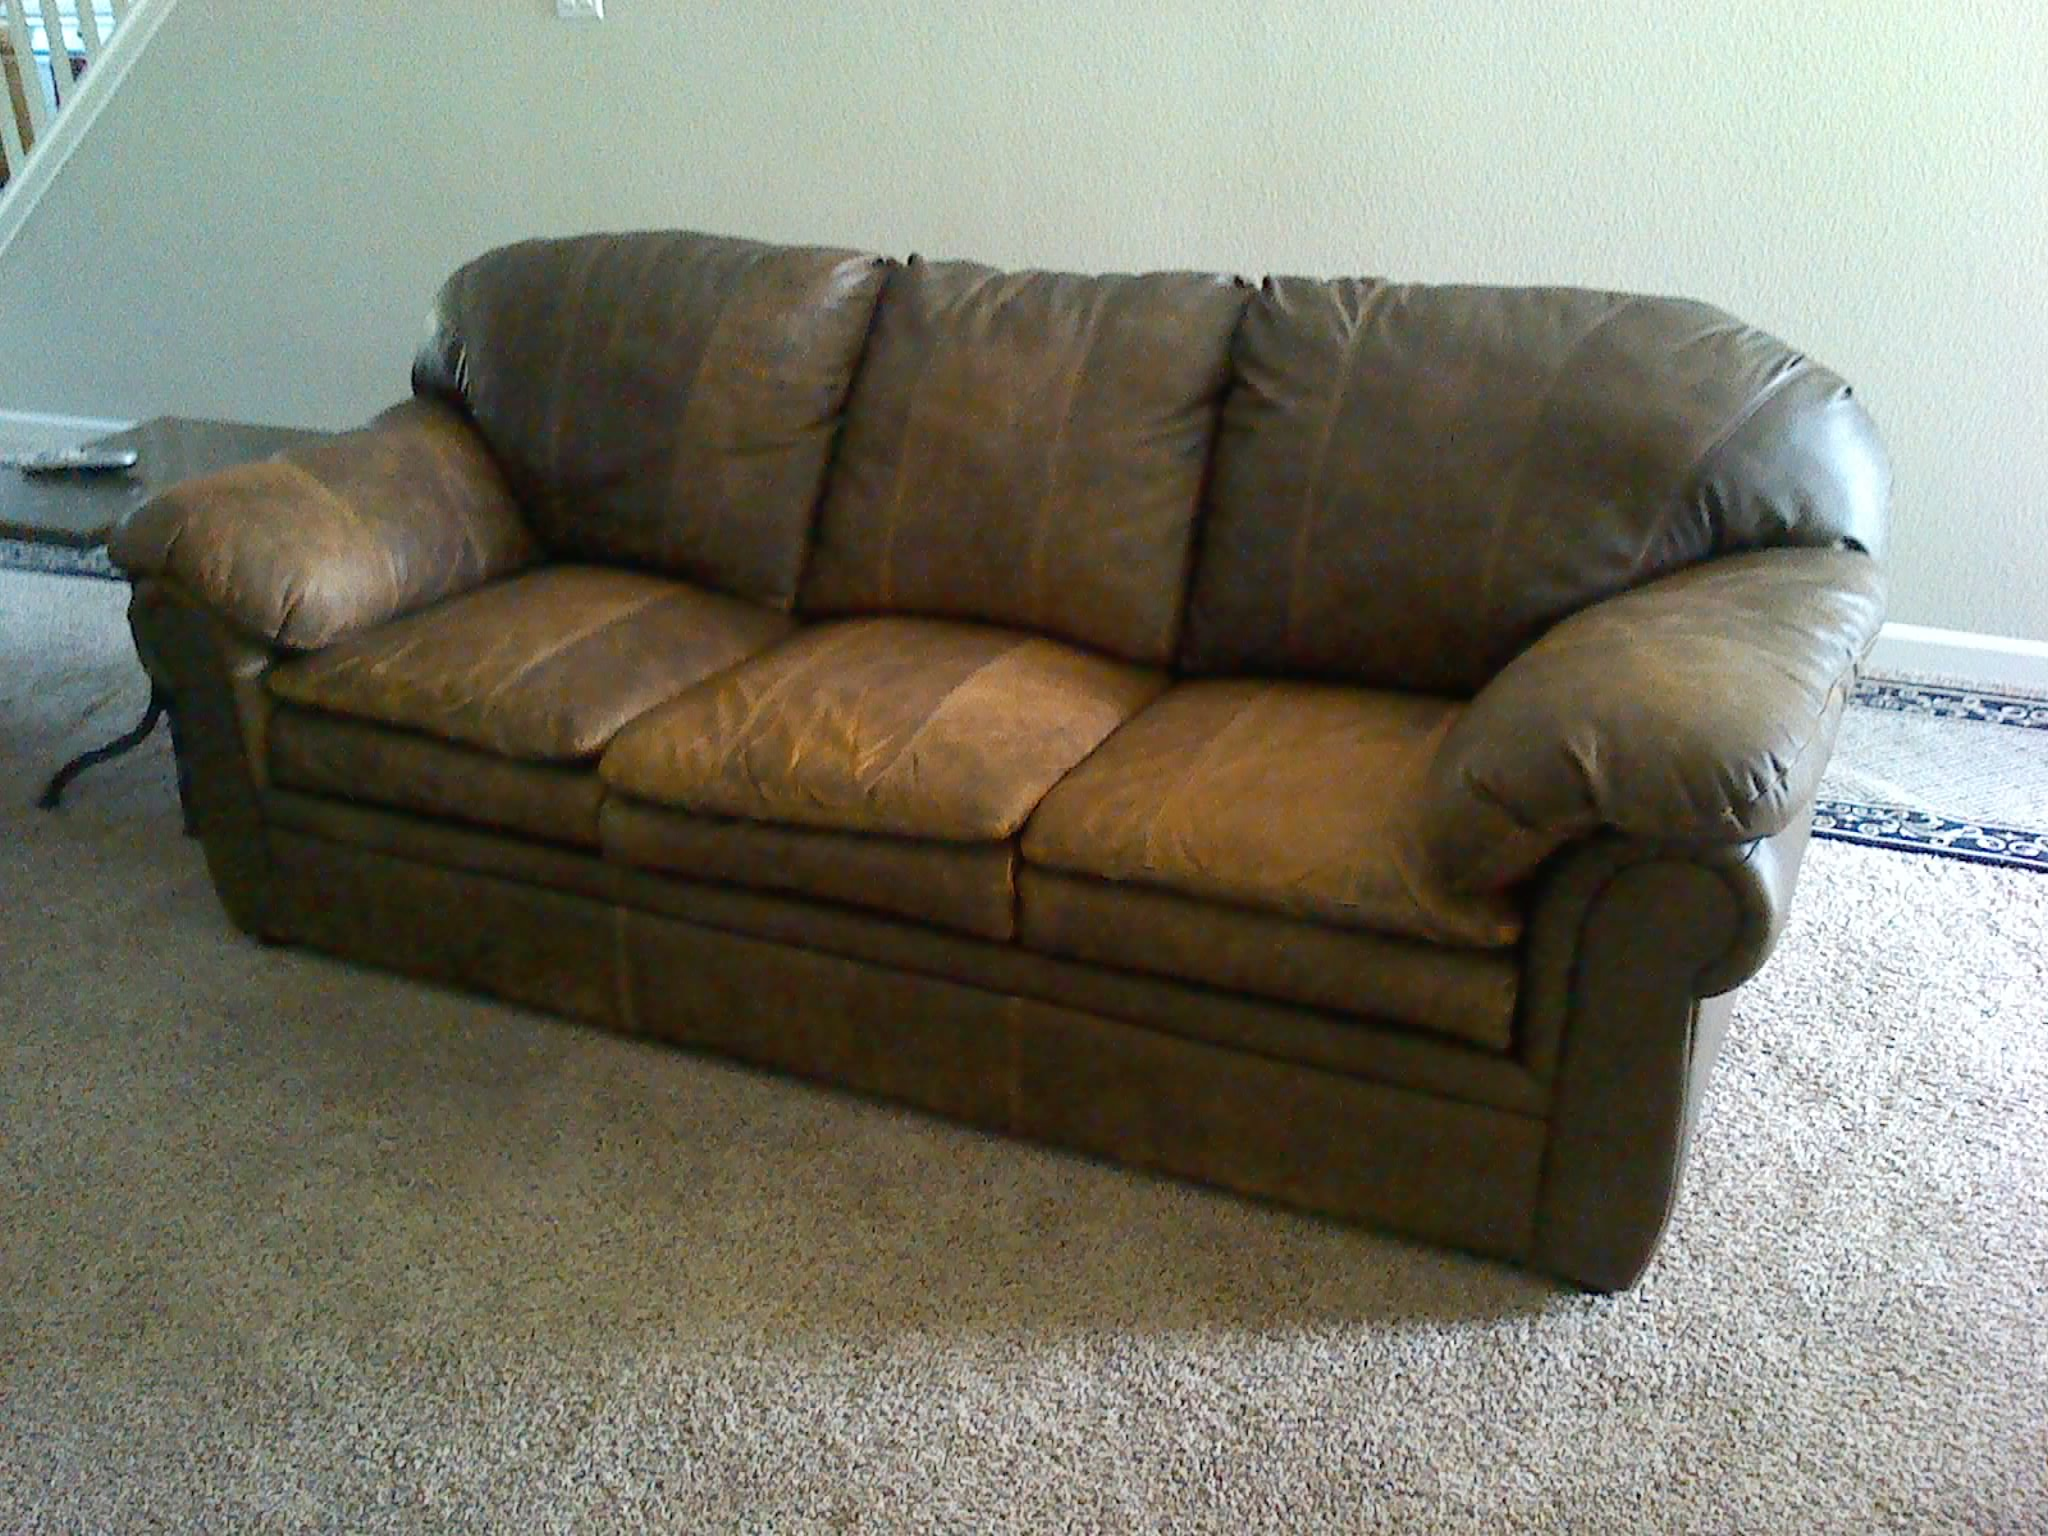 Conditioning quotBomber Jacket Lookquot Leather Couch amp Chair  : IMG20140411123336 from carpetcleaning-rosevilleca.com size 2048 x 1536 jpeg 472kB